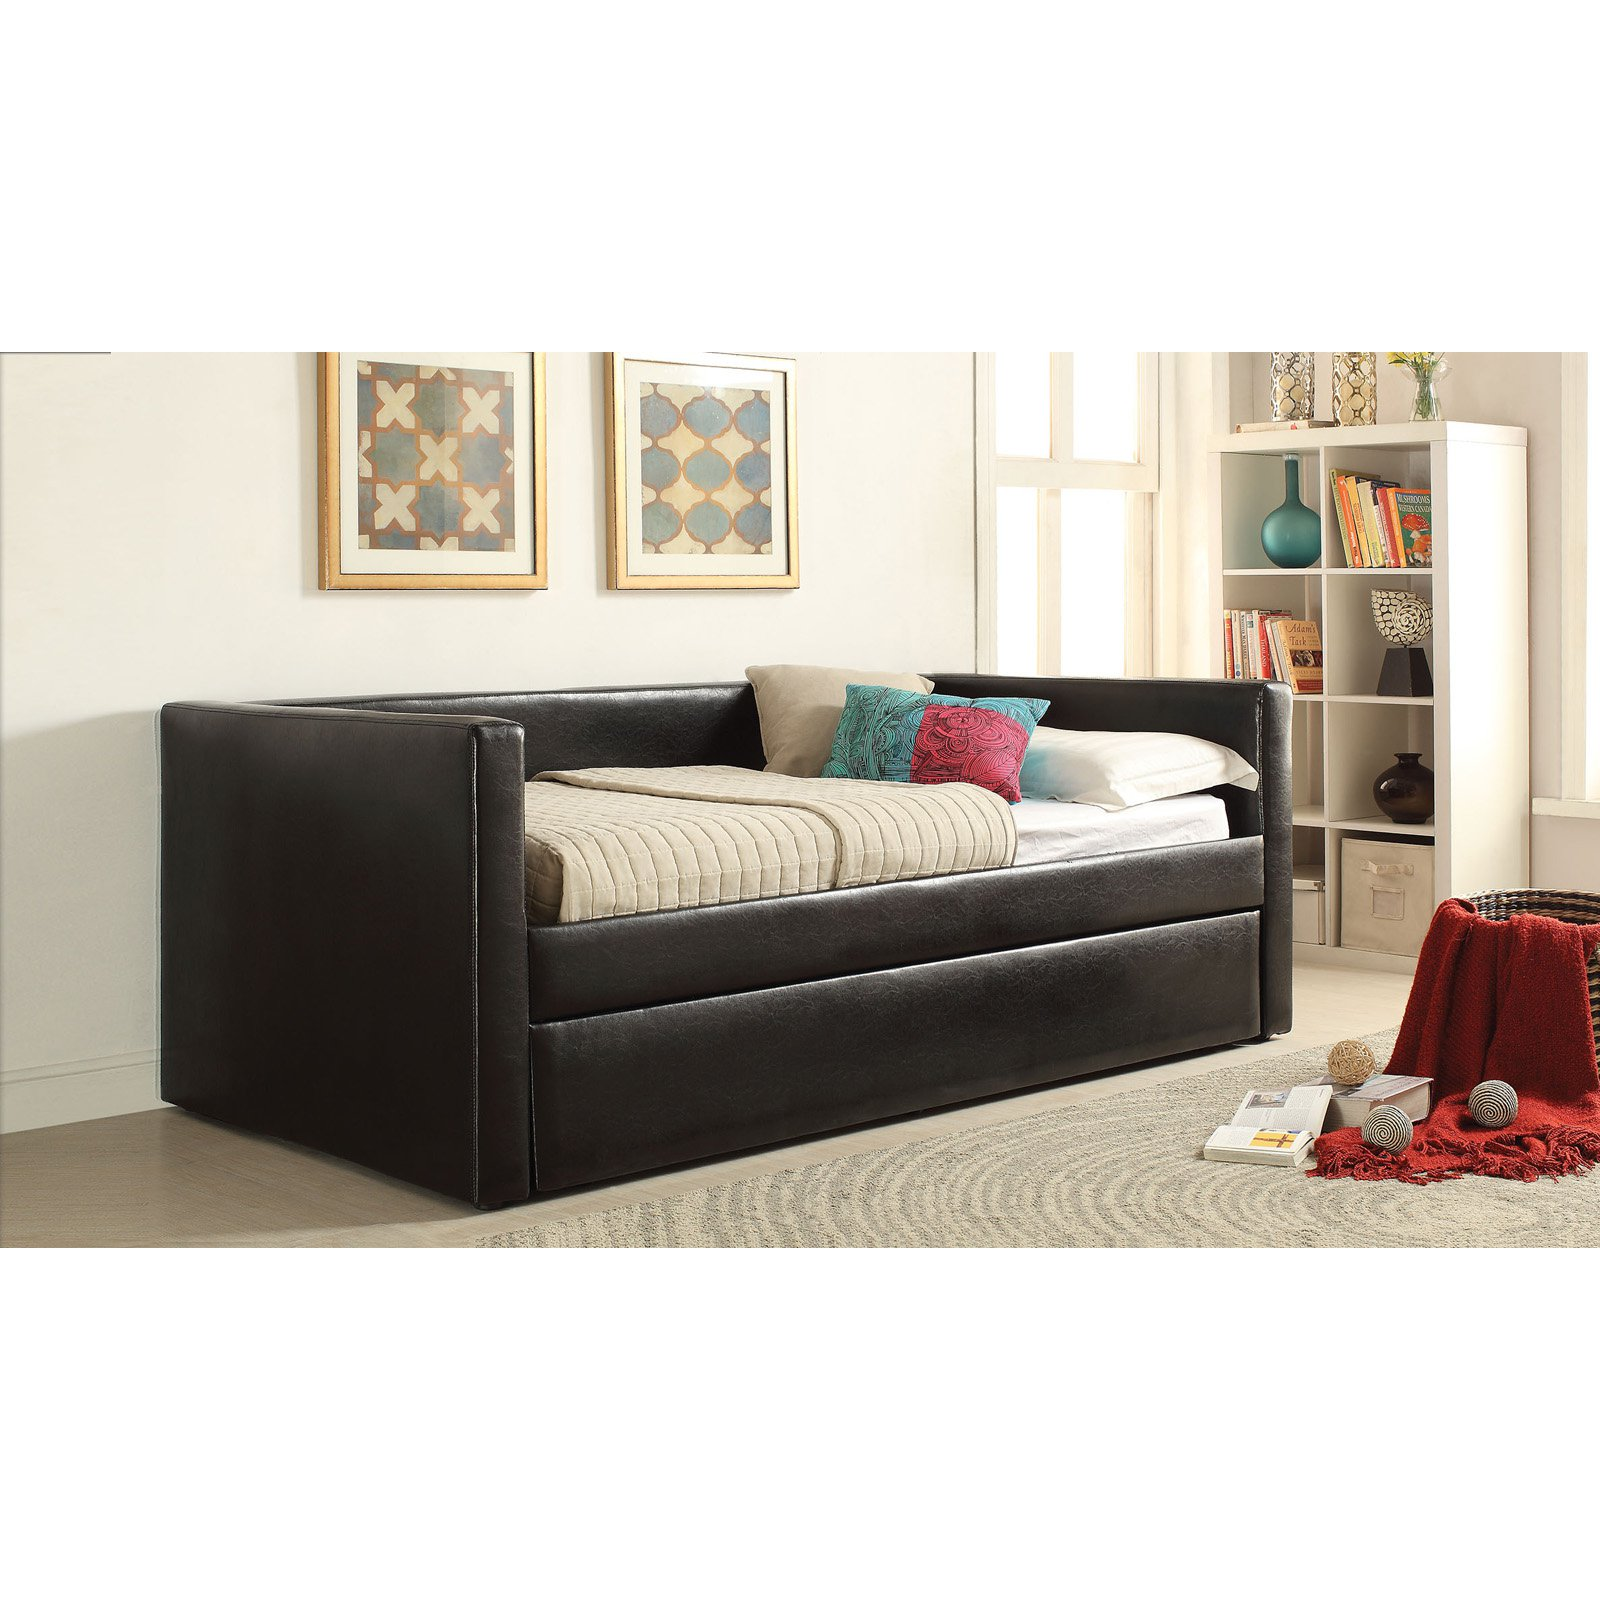 Acme Melbourne Upholstered Day Bed with Trundle